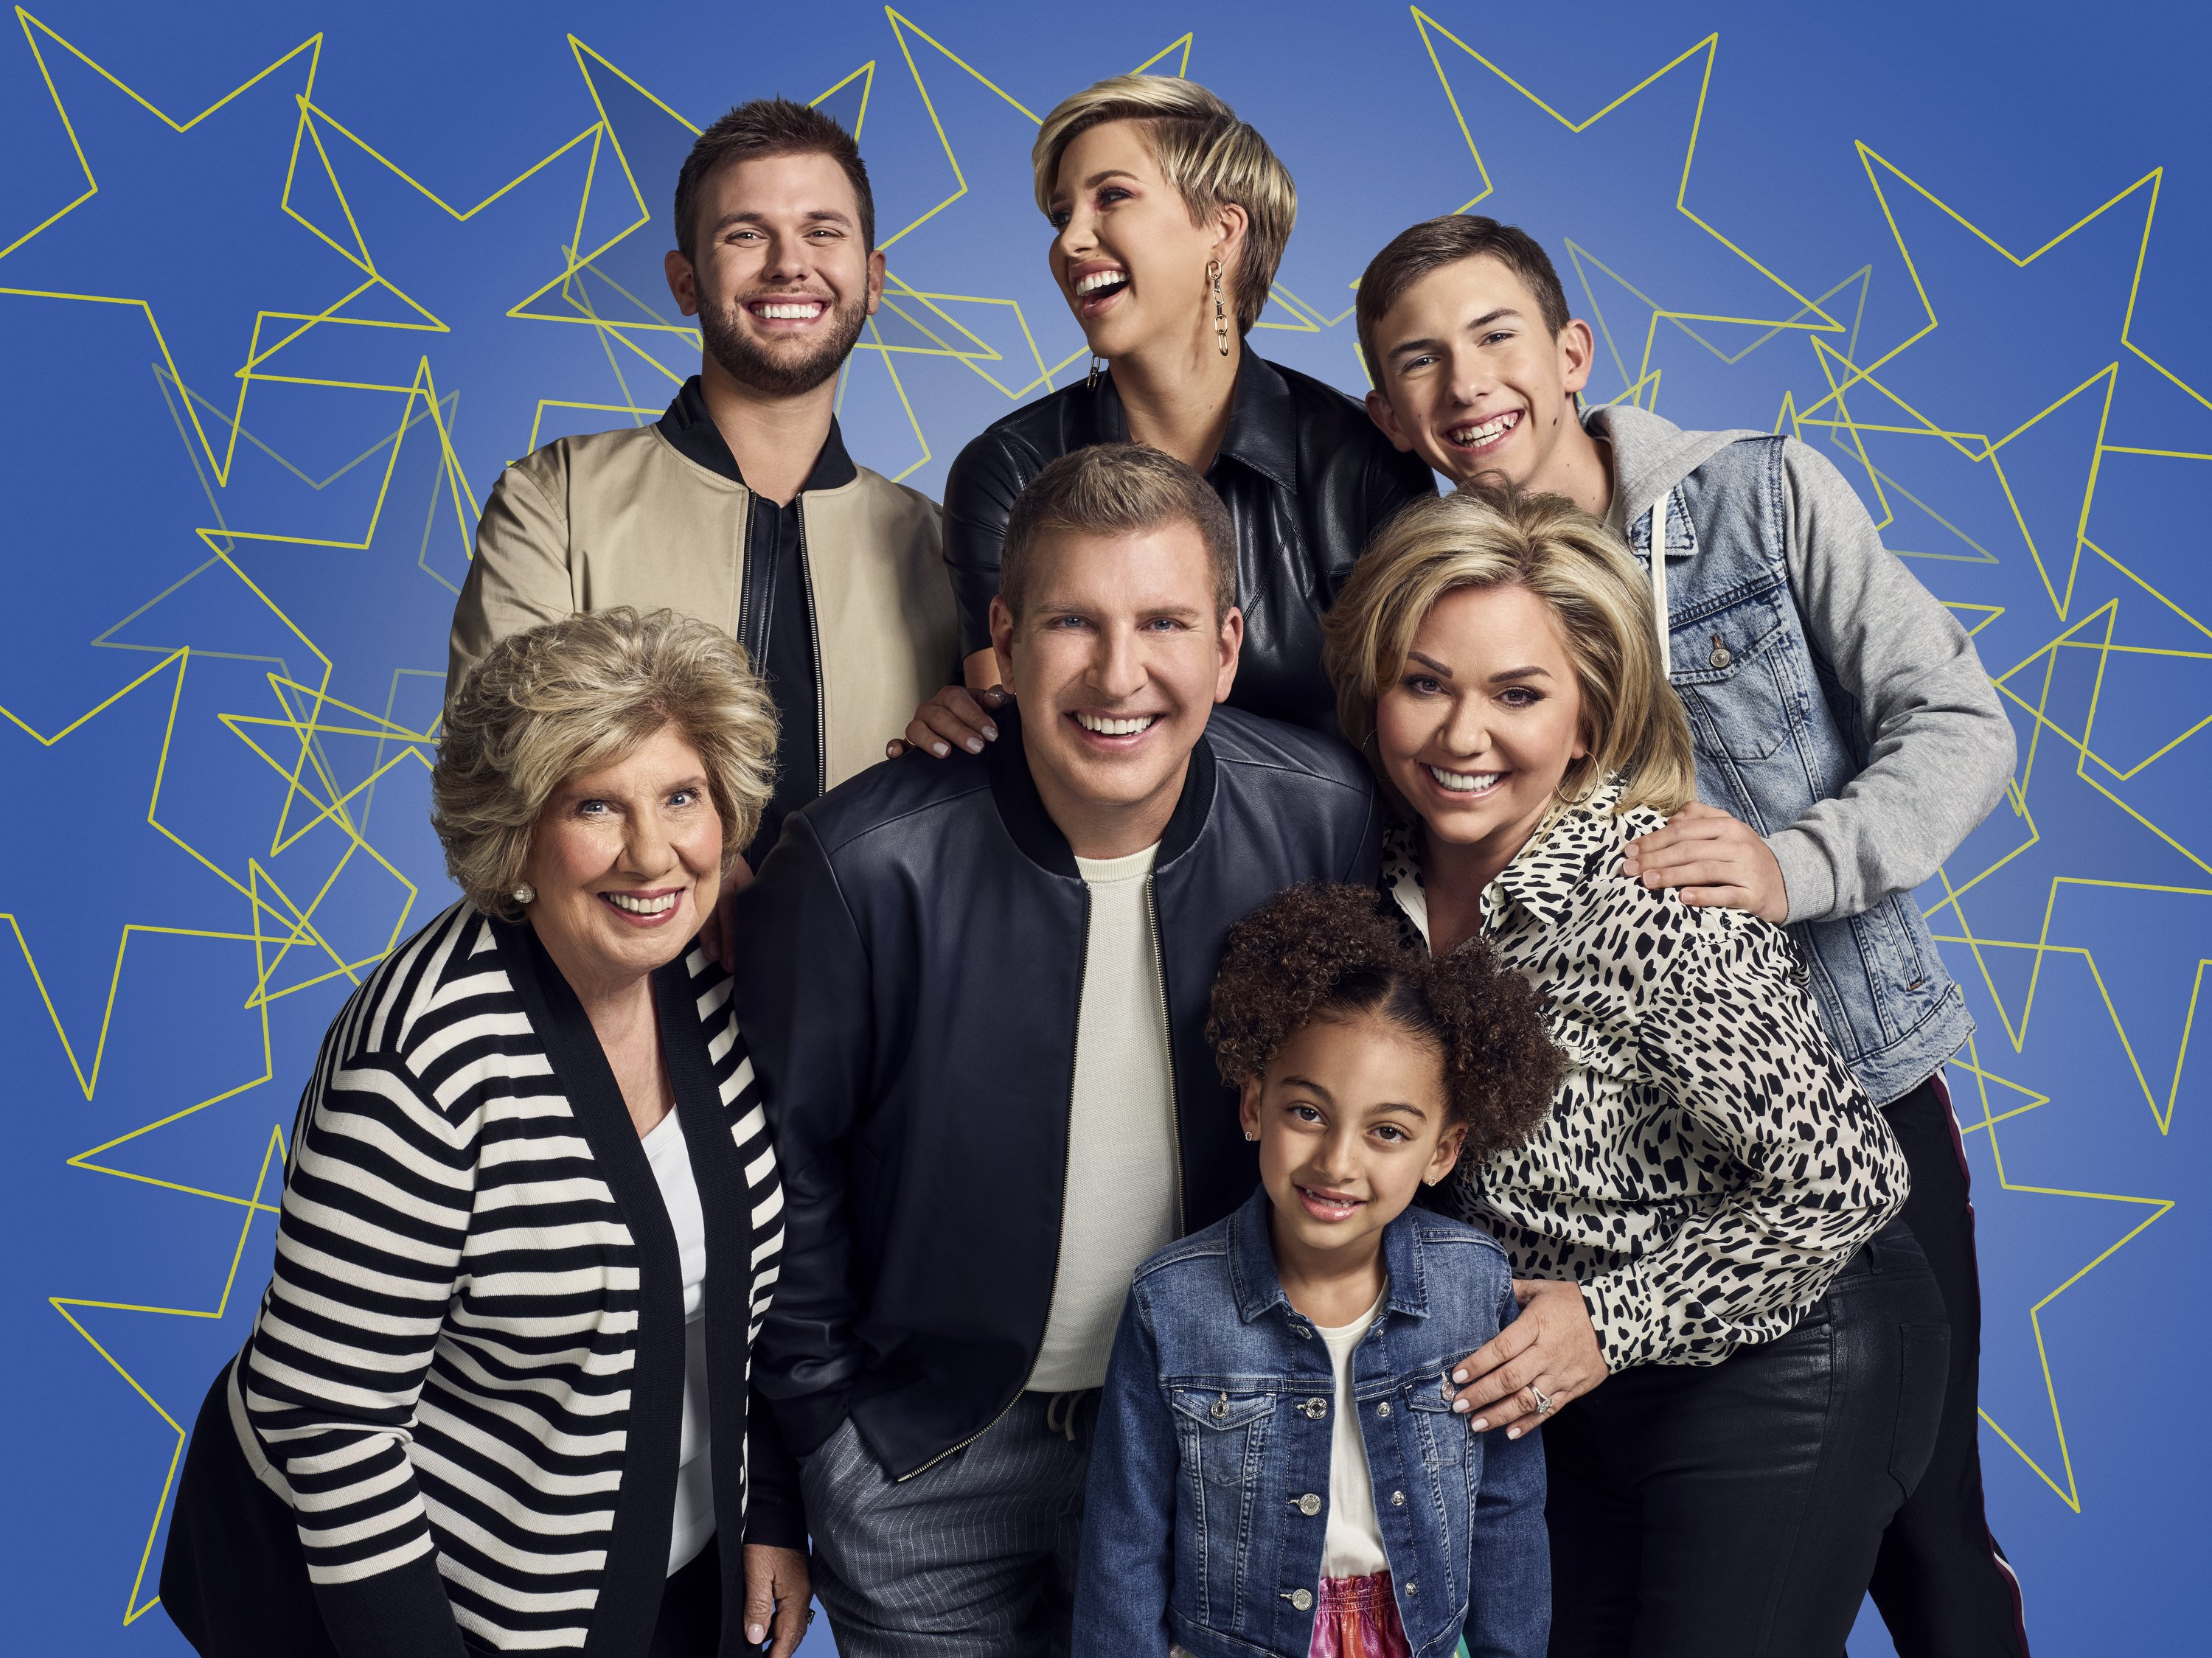 """Faye Chrisley, Chase Chrisley, Todd Chrisley, Savannah Chrisley, Chloe Chrisley, Julie Chrisley, and Grayson Chrisley from """"Chrisley Knows Best."""" Source: Getty Images."""